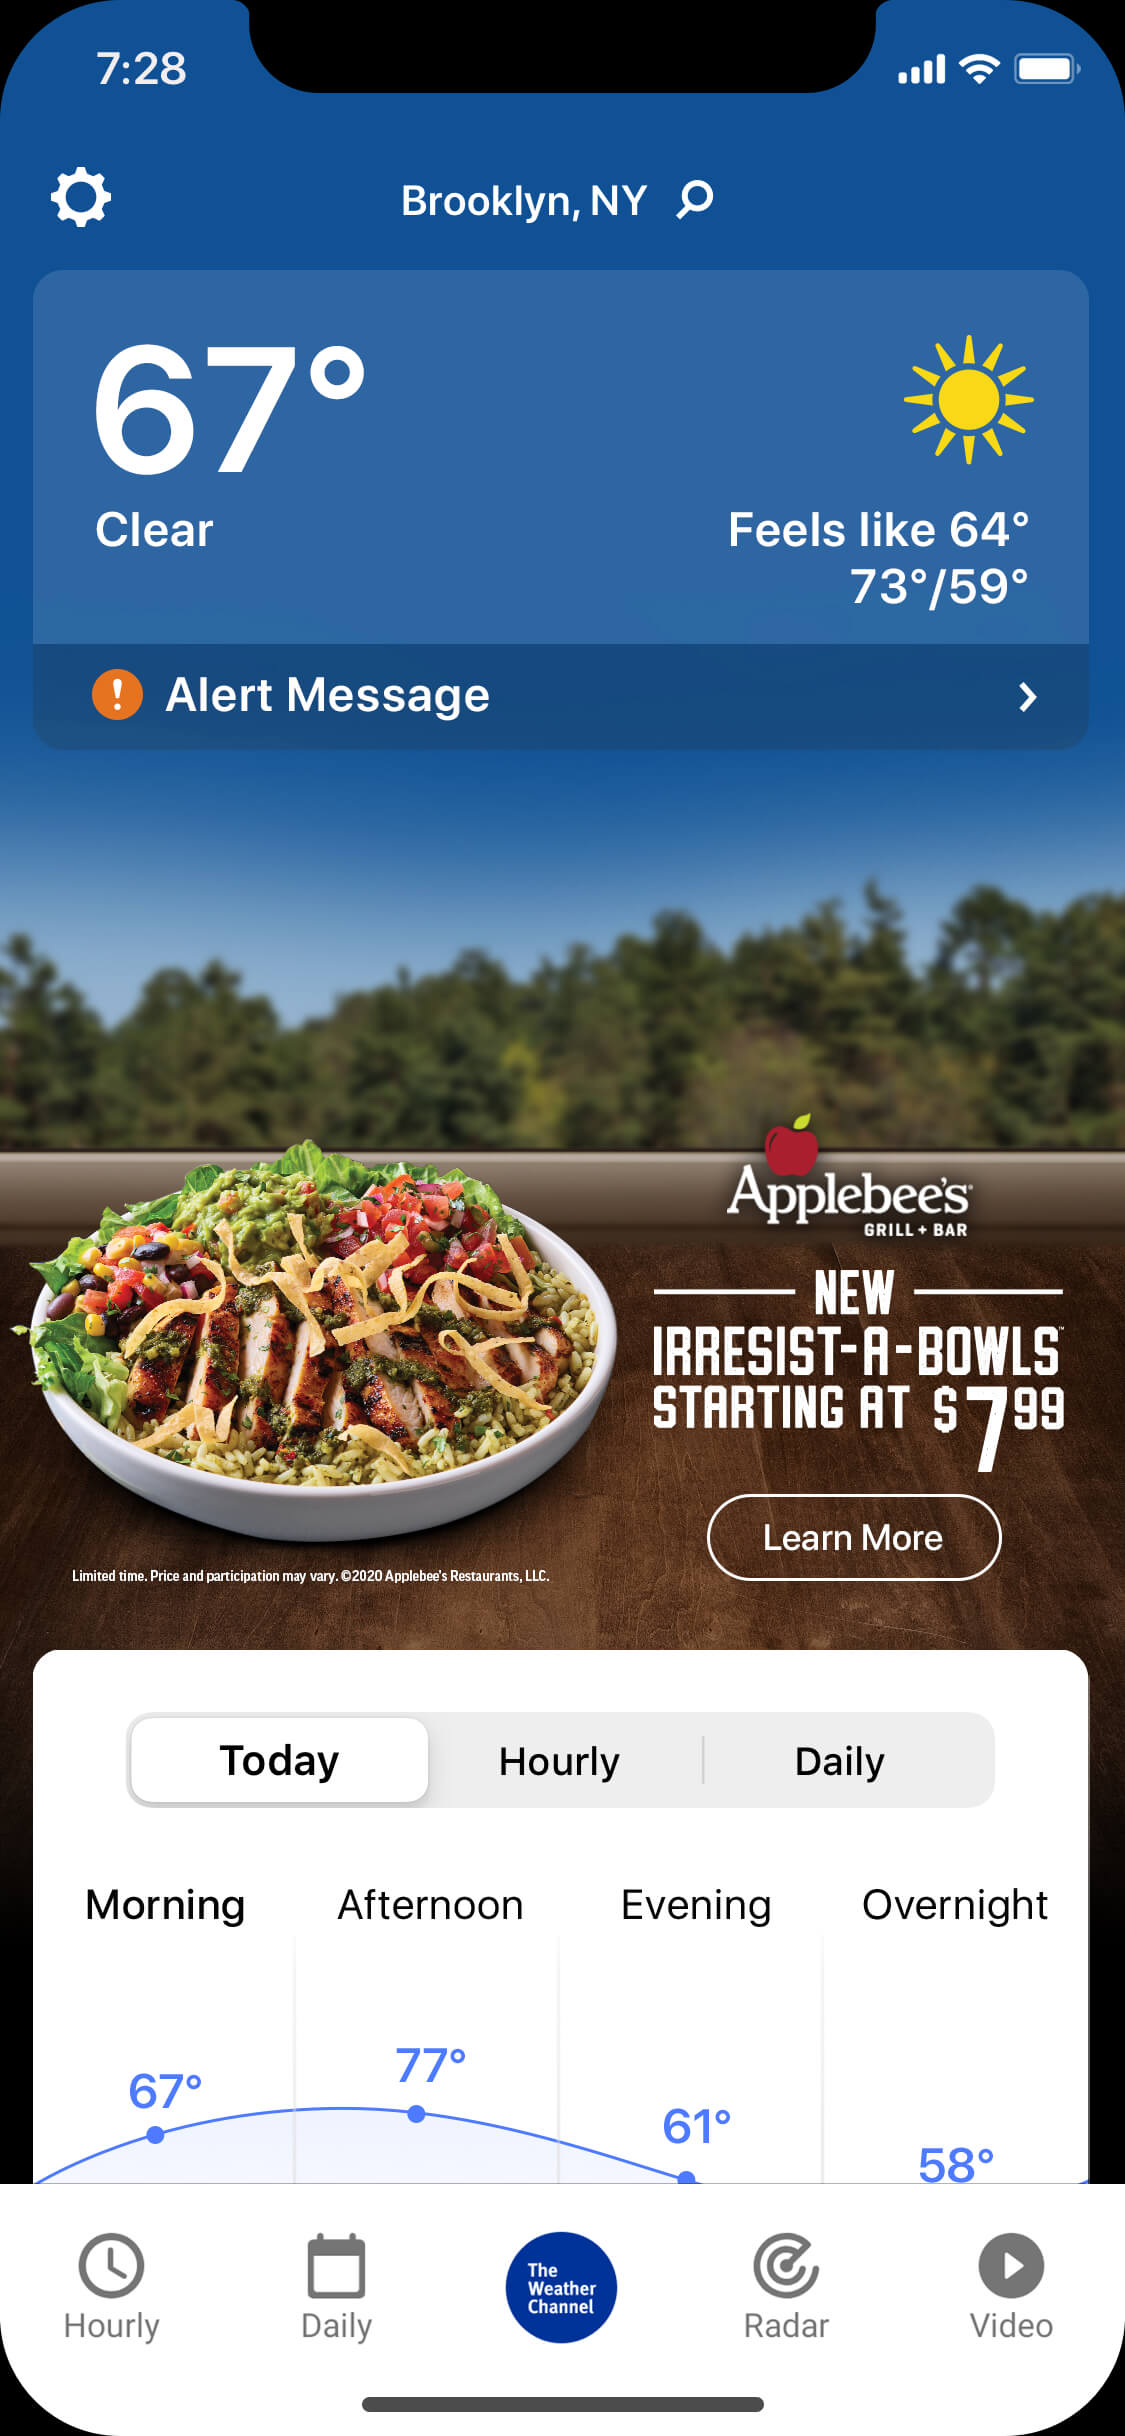 applebees-bowls-im_clear-day